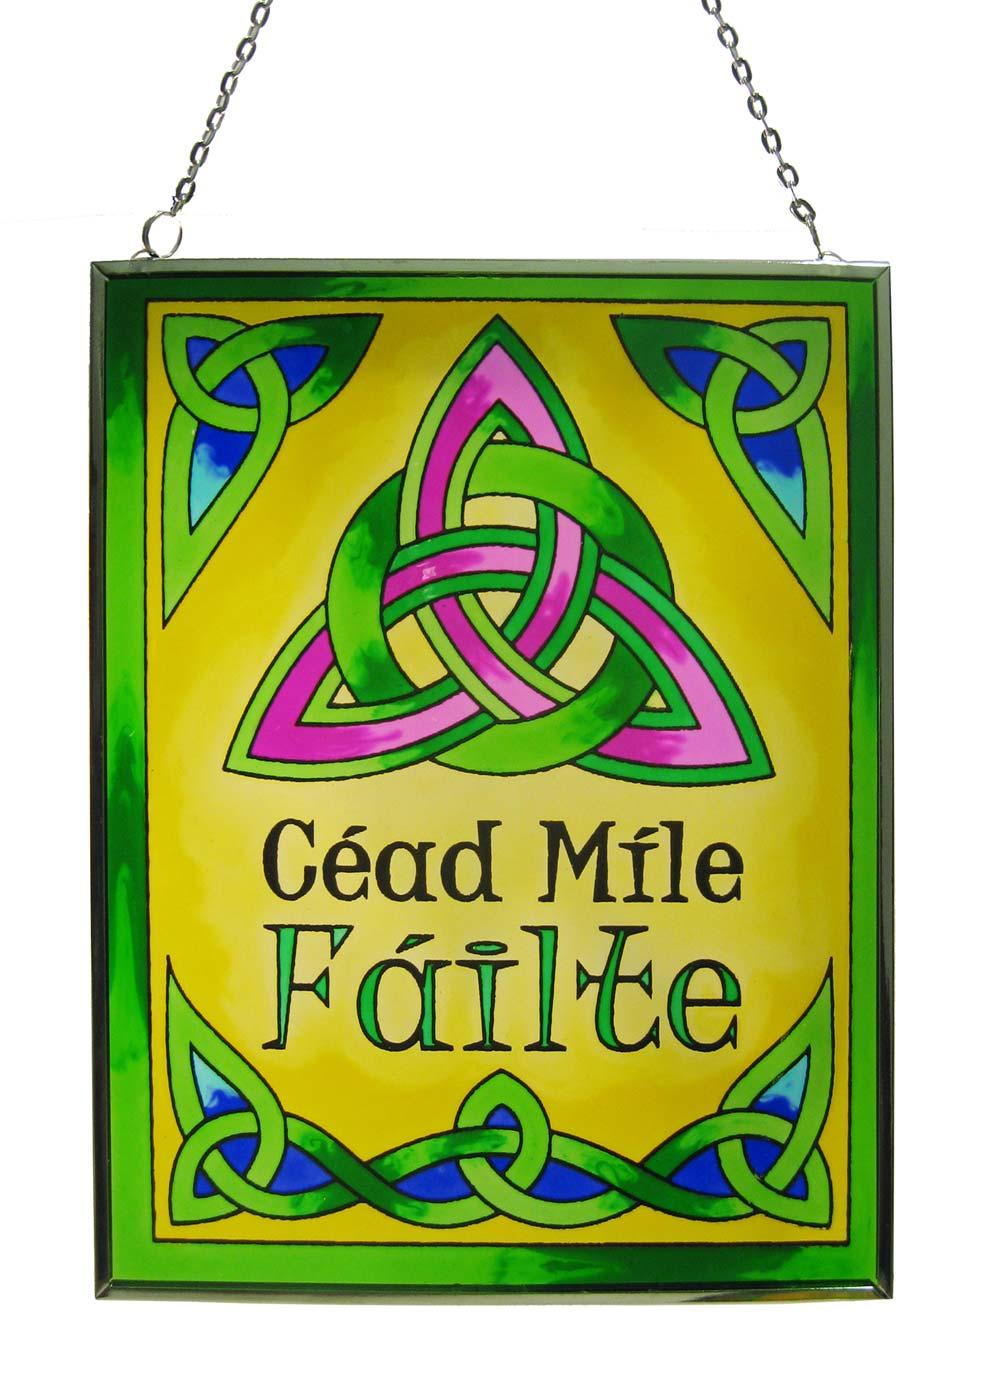 Céad Míle Féilte (trans. One Hundred Thousand Welcomes) Square Stained Glass Suncatcher